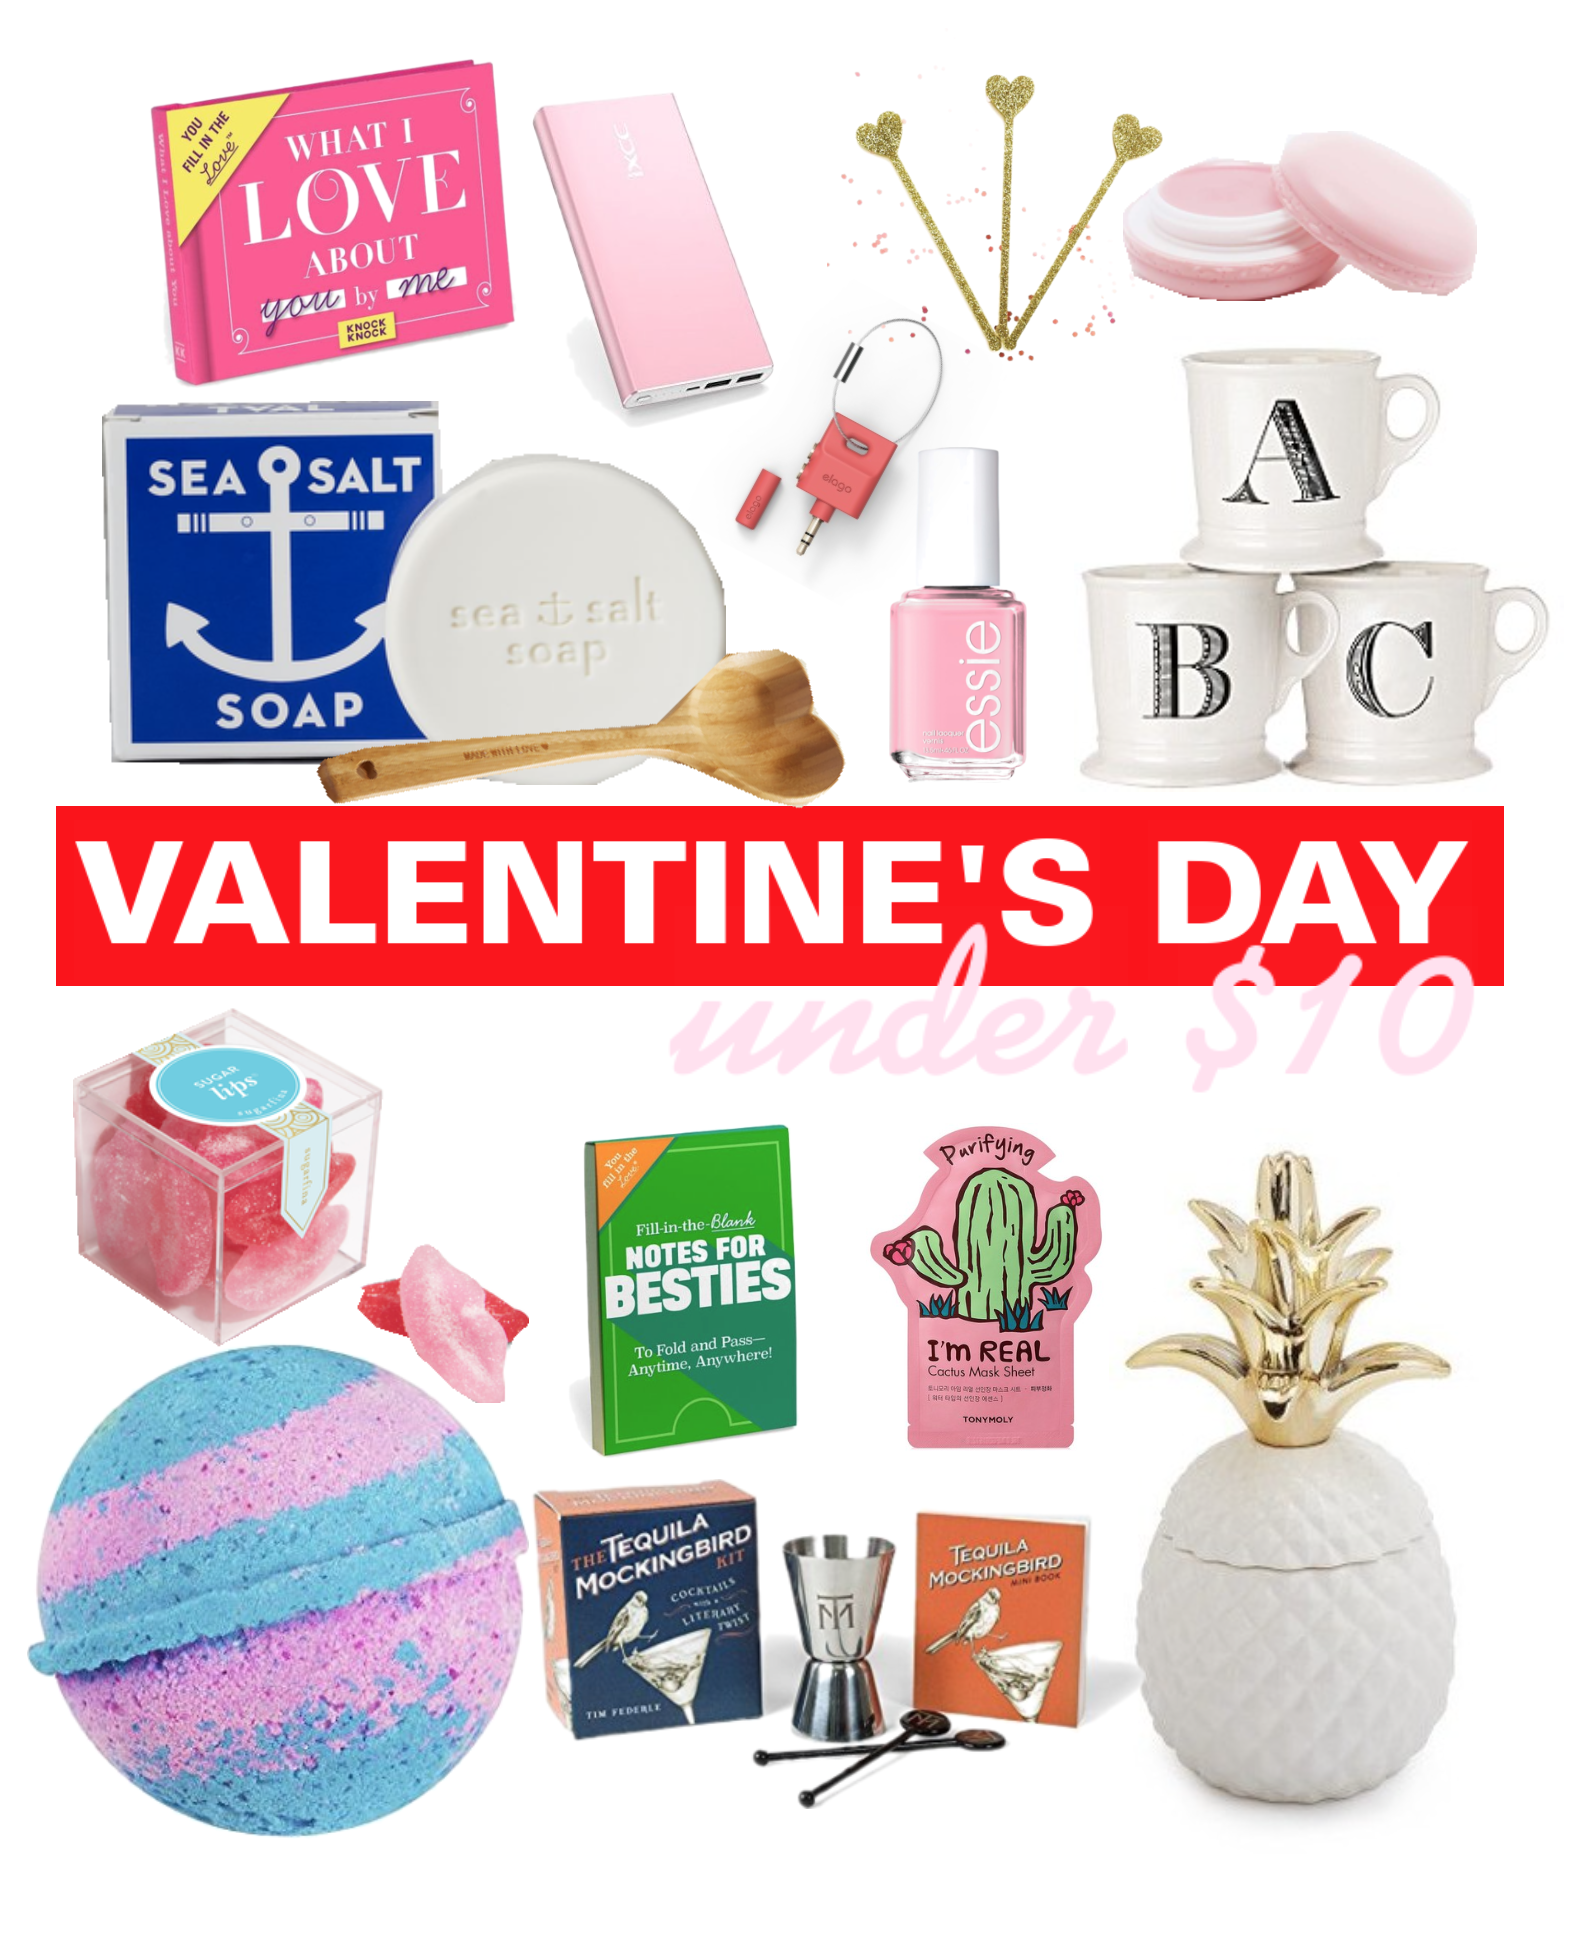 Valentine's Day Gift List: Under $10! - Valentine's Day Gift Ideas - Valentine's Day Gifts For Her - Gifts For Him - Gift Ideas Under $10 - Holiday Gift Ideas - Communikait by Kait Hanson